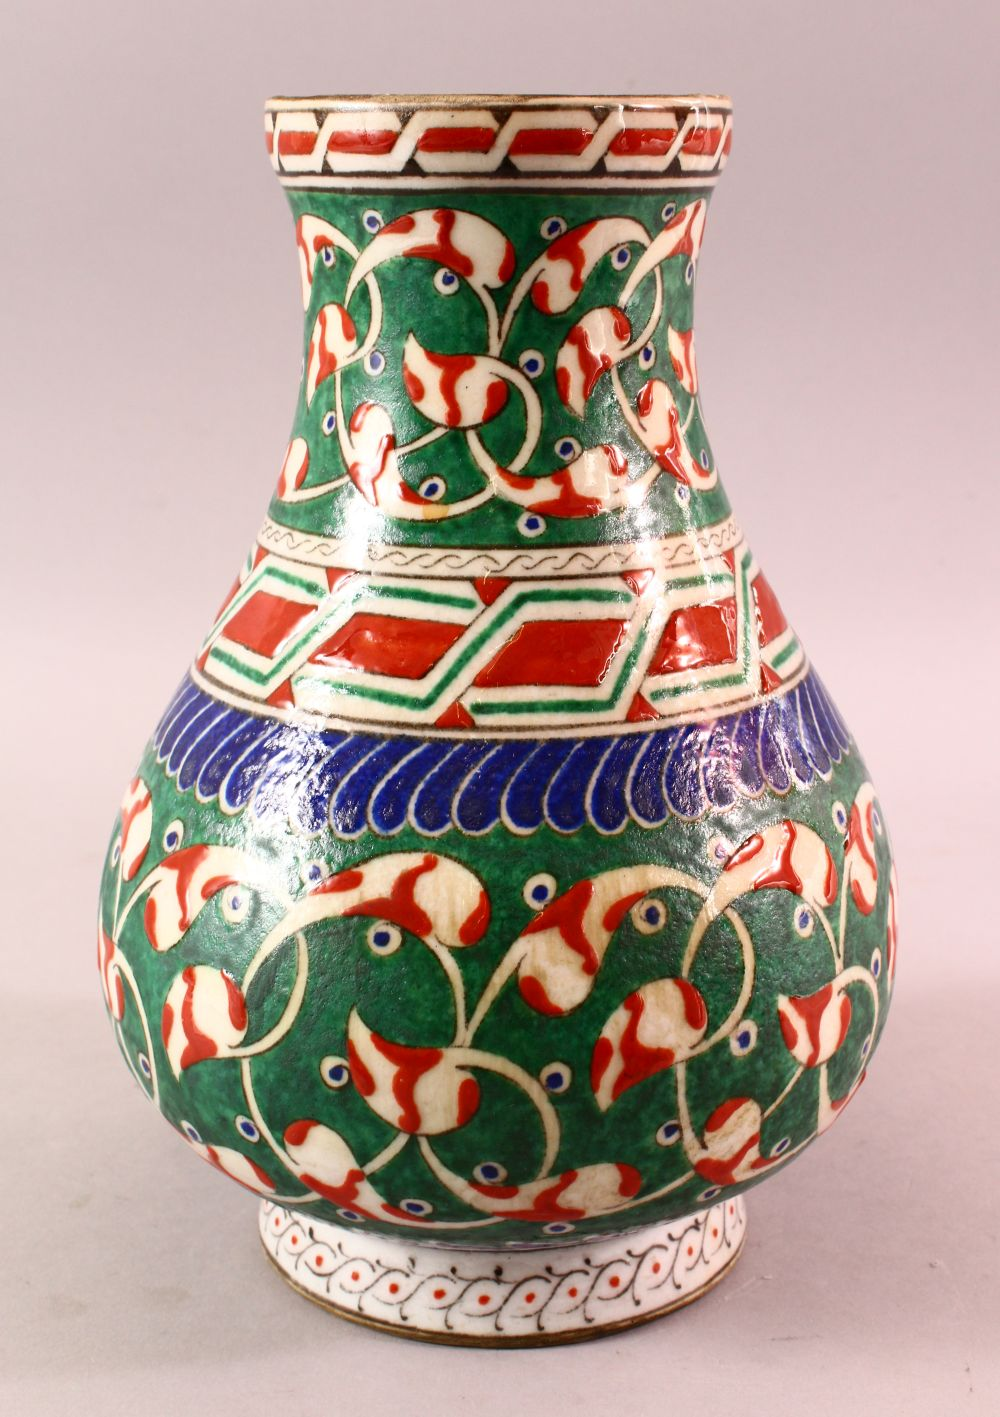 A TURKISH OTTOMAN 18TH CENTURY IZNIK VASE, with green and red motif decorations, 26cm